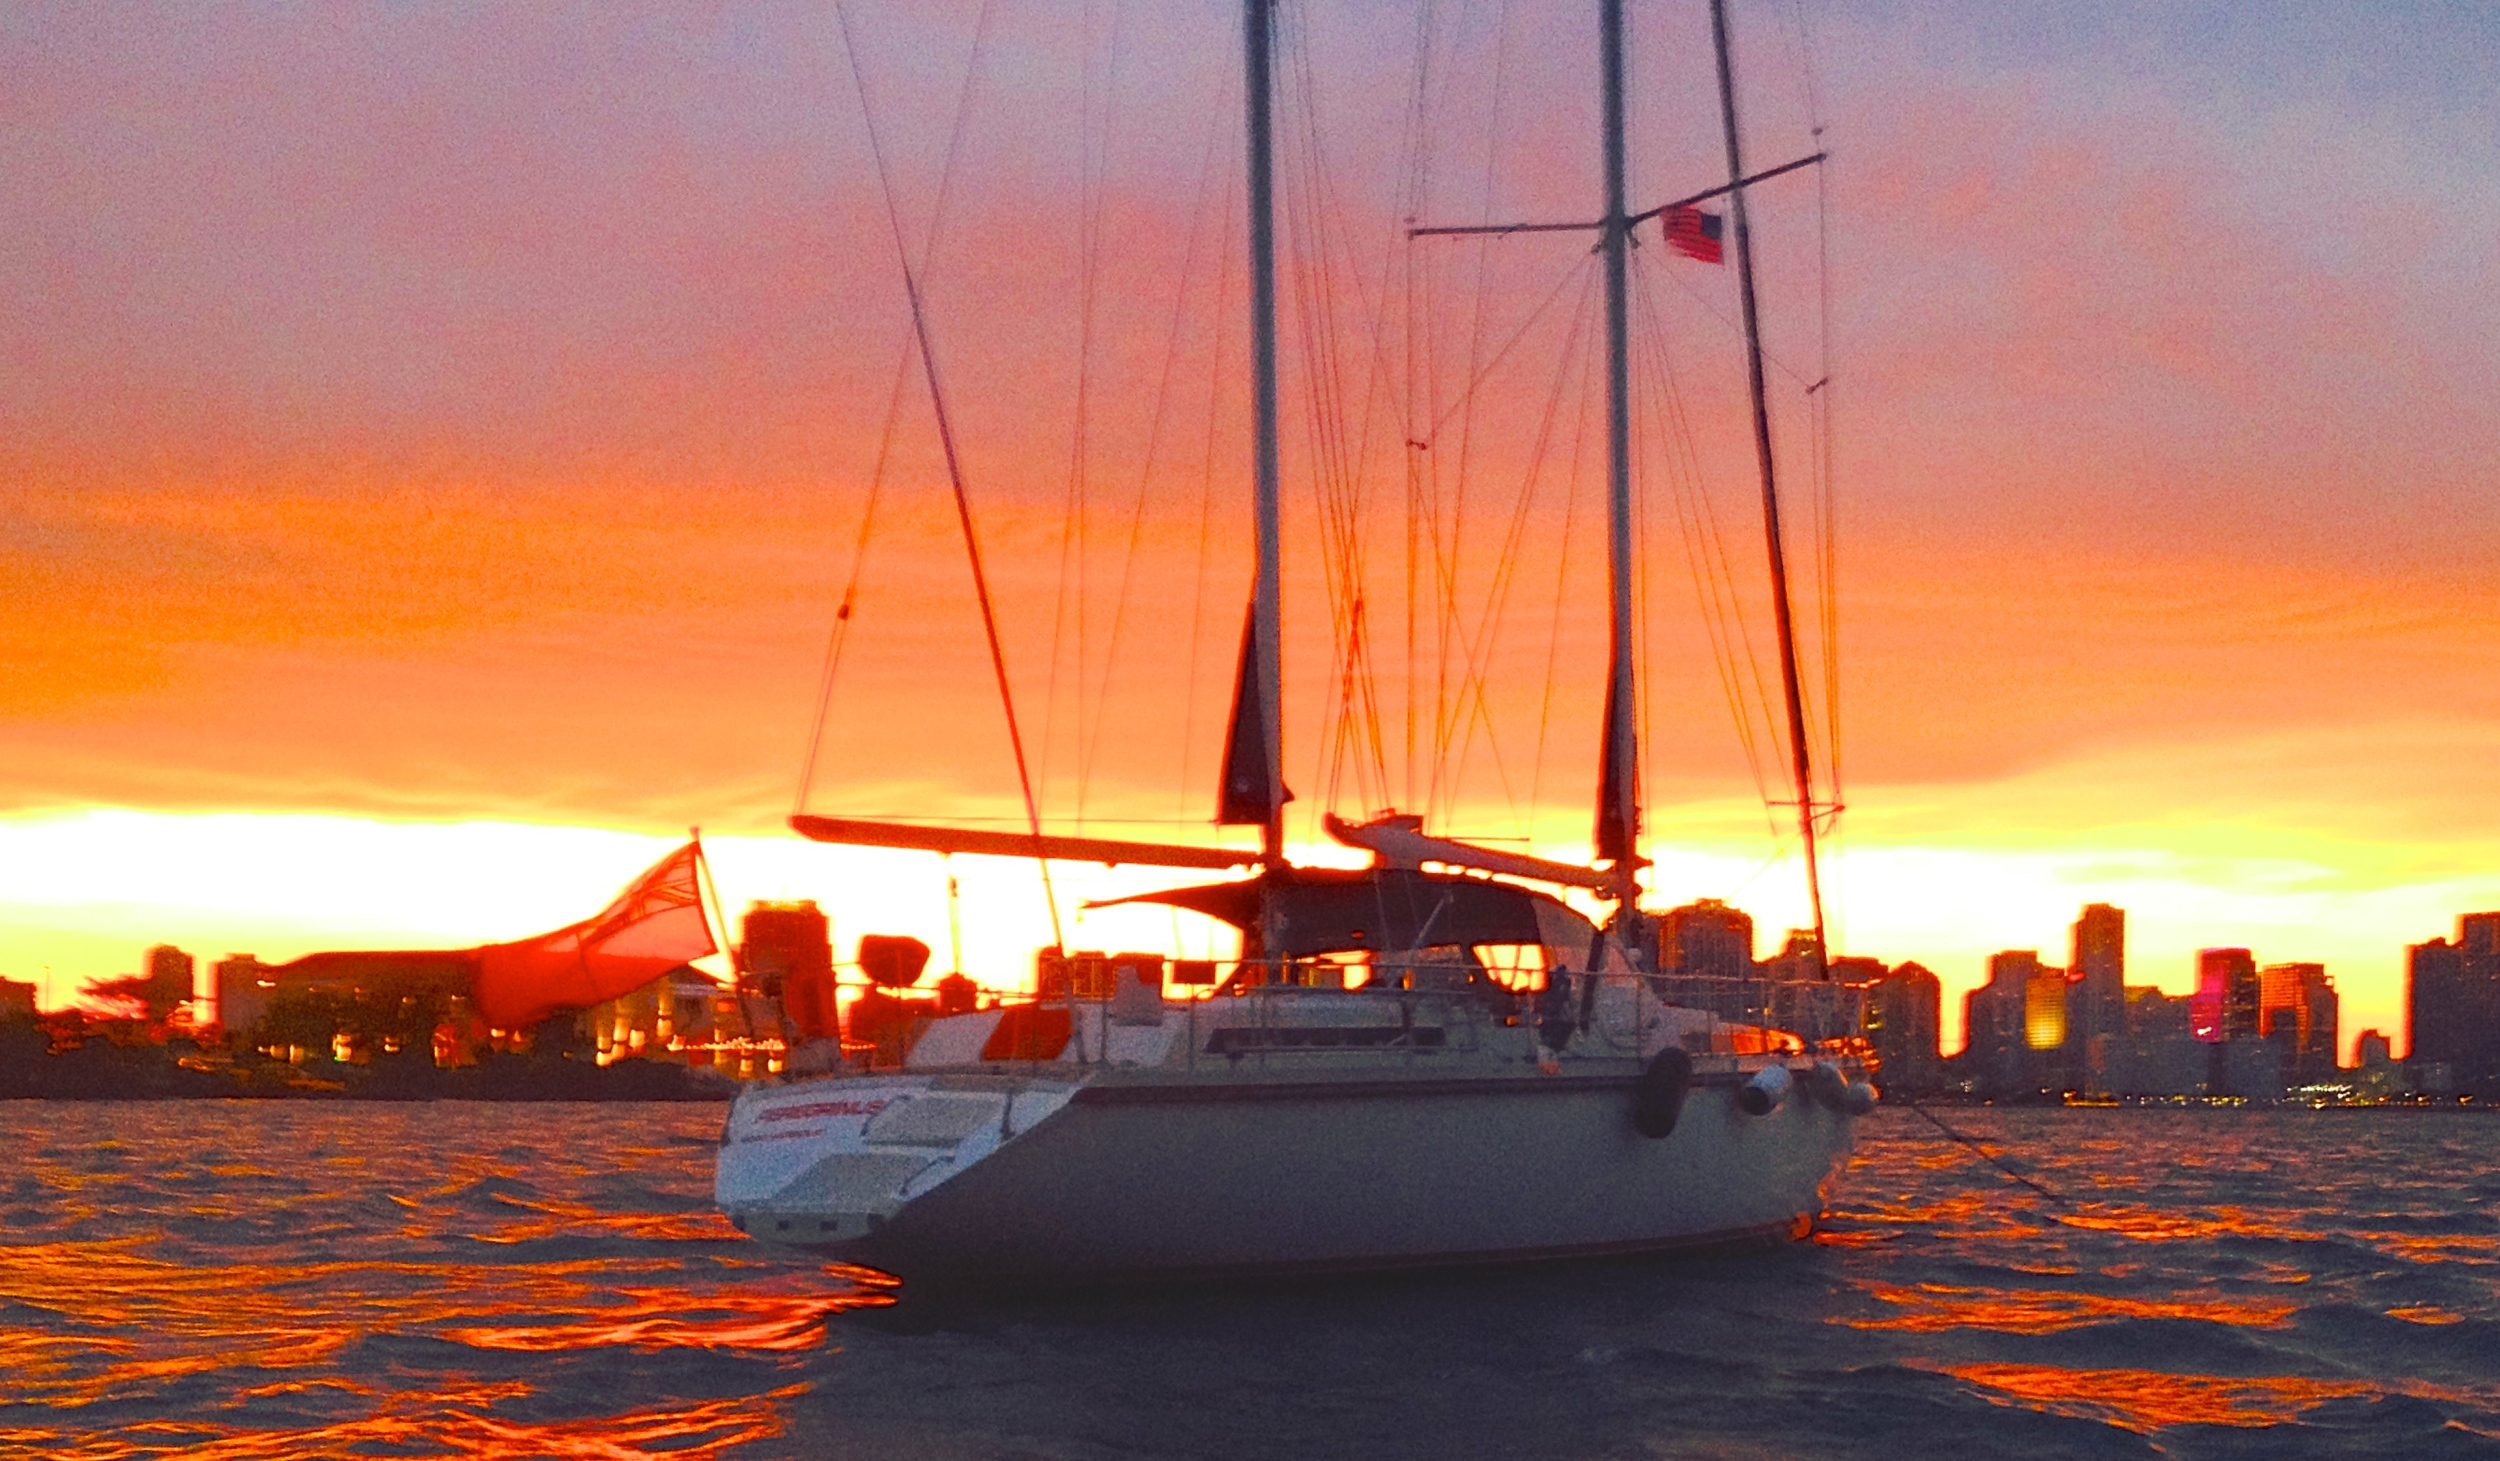 Peregrinus  at anchor, Biscayne Bay, Miami, 8:13 PM, 16 May 2014.  iPhone 4S, ISO 125, 1/20""